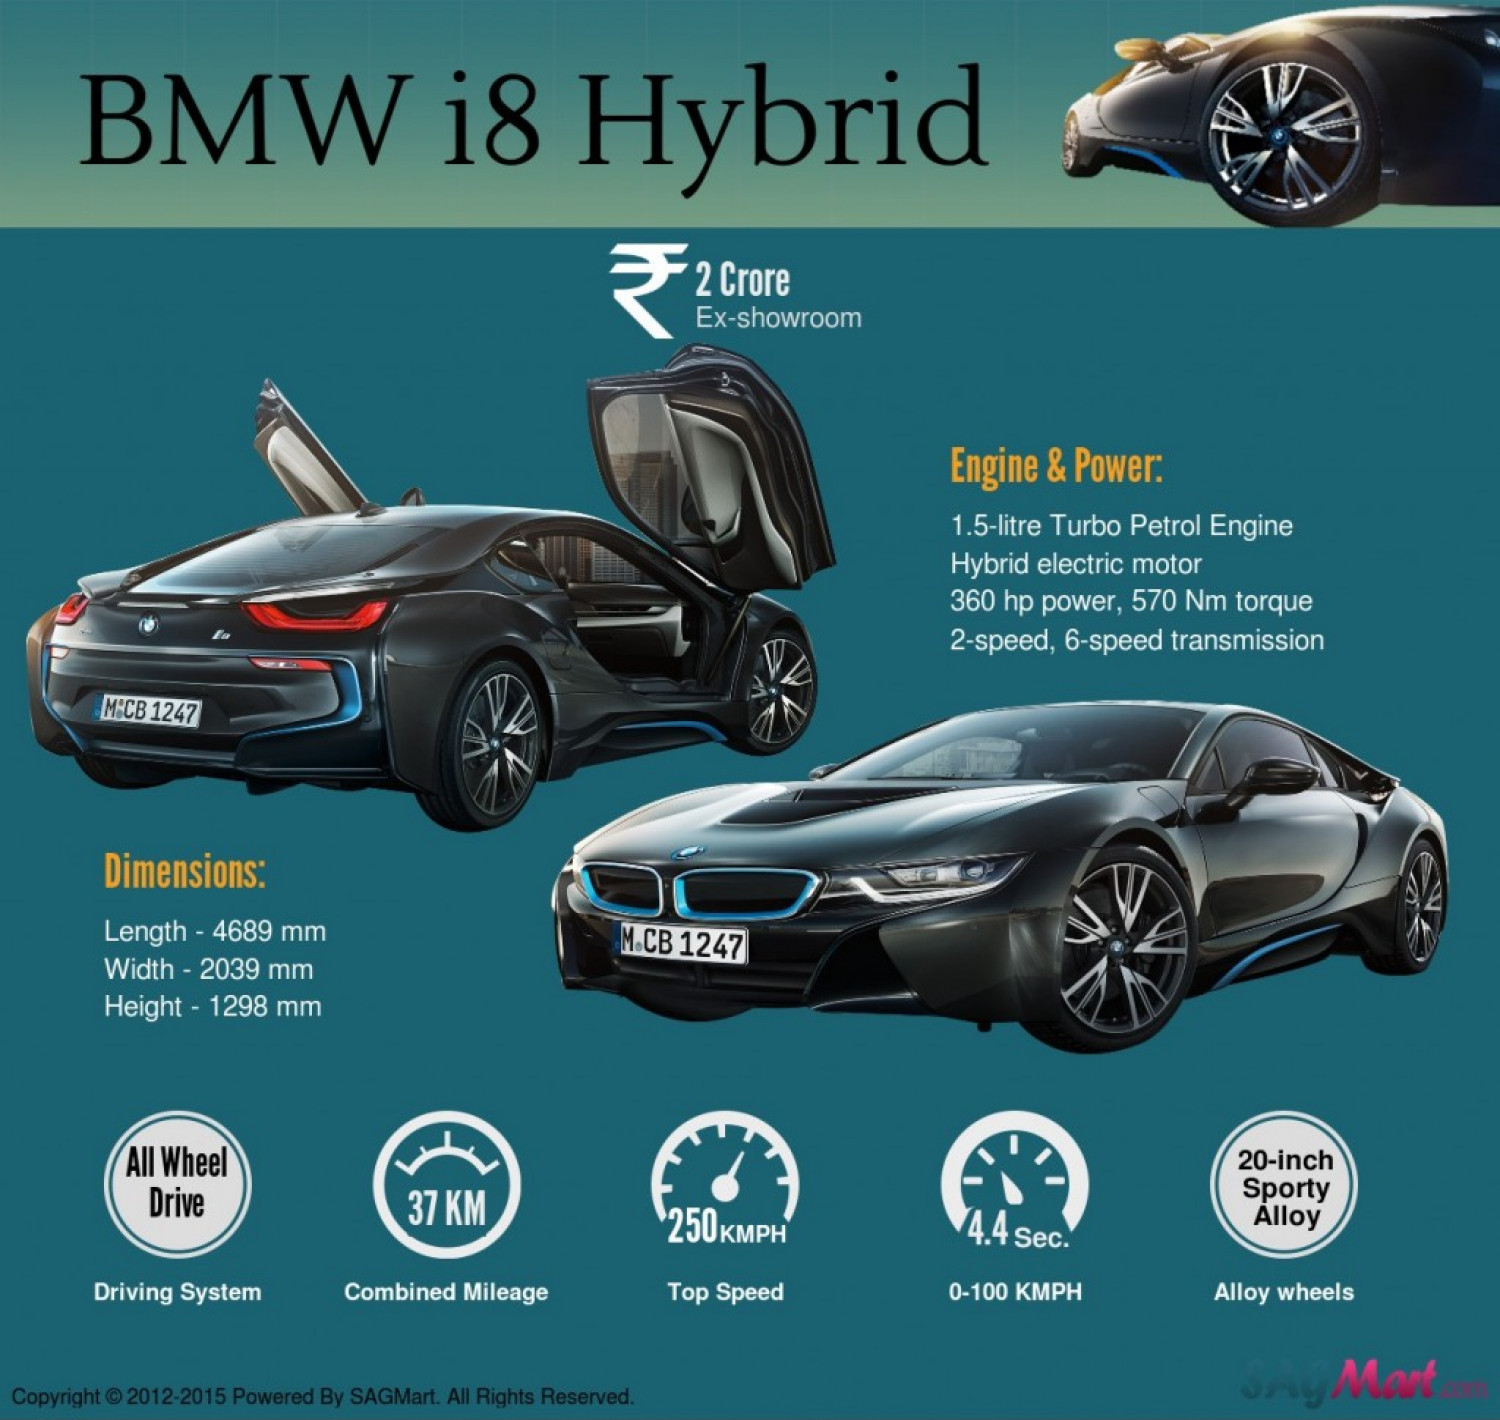 Bmw I8 Hybrid Car Features And Price Visual Ly